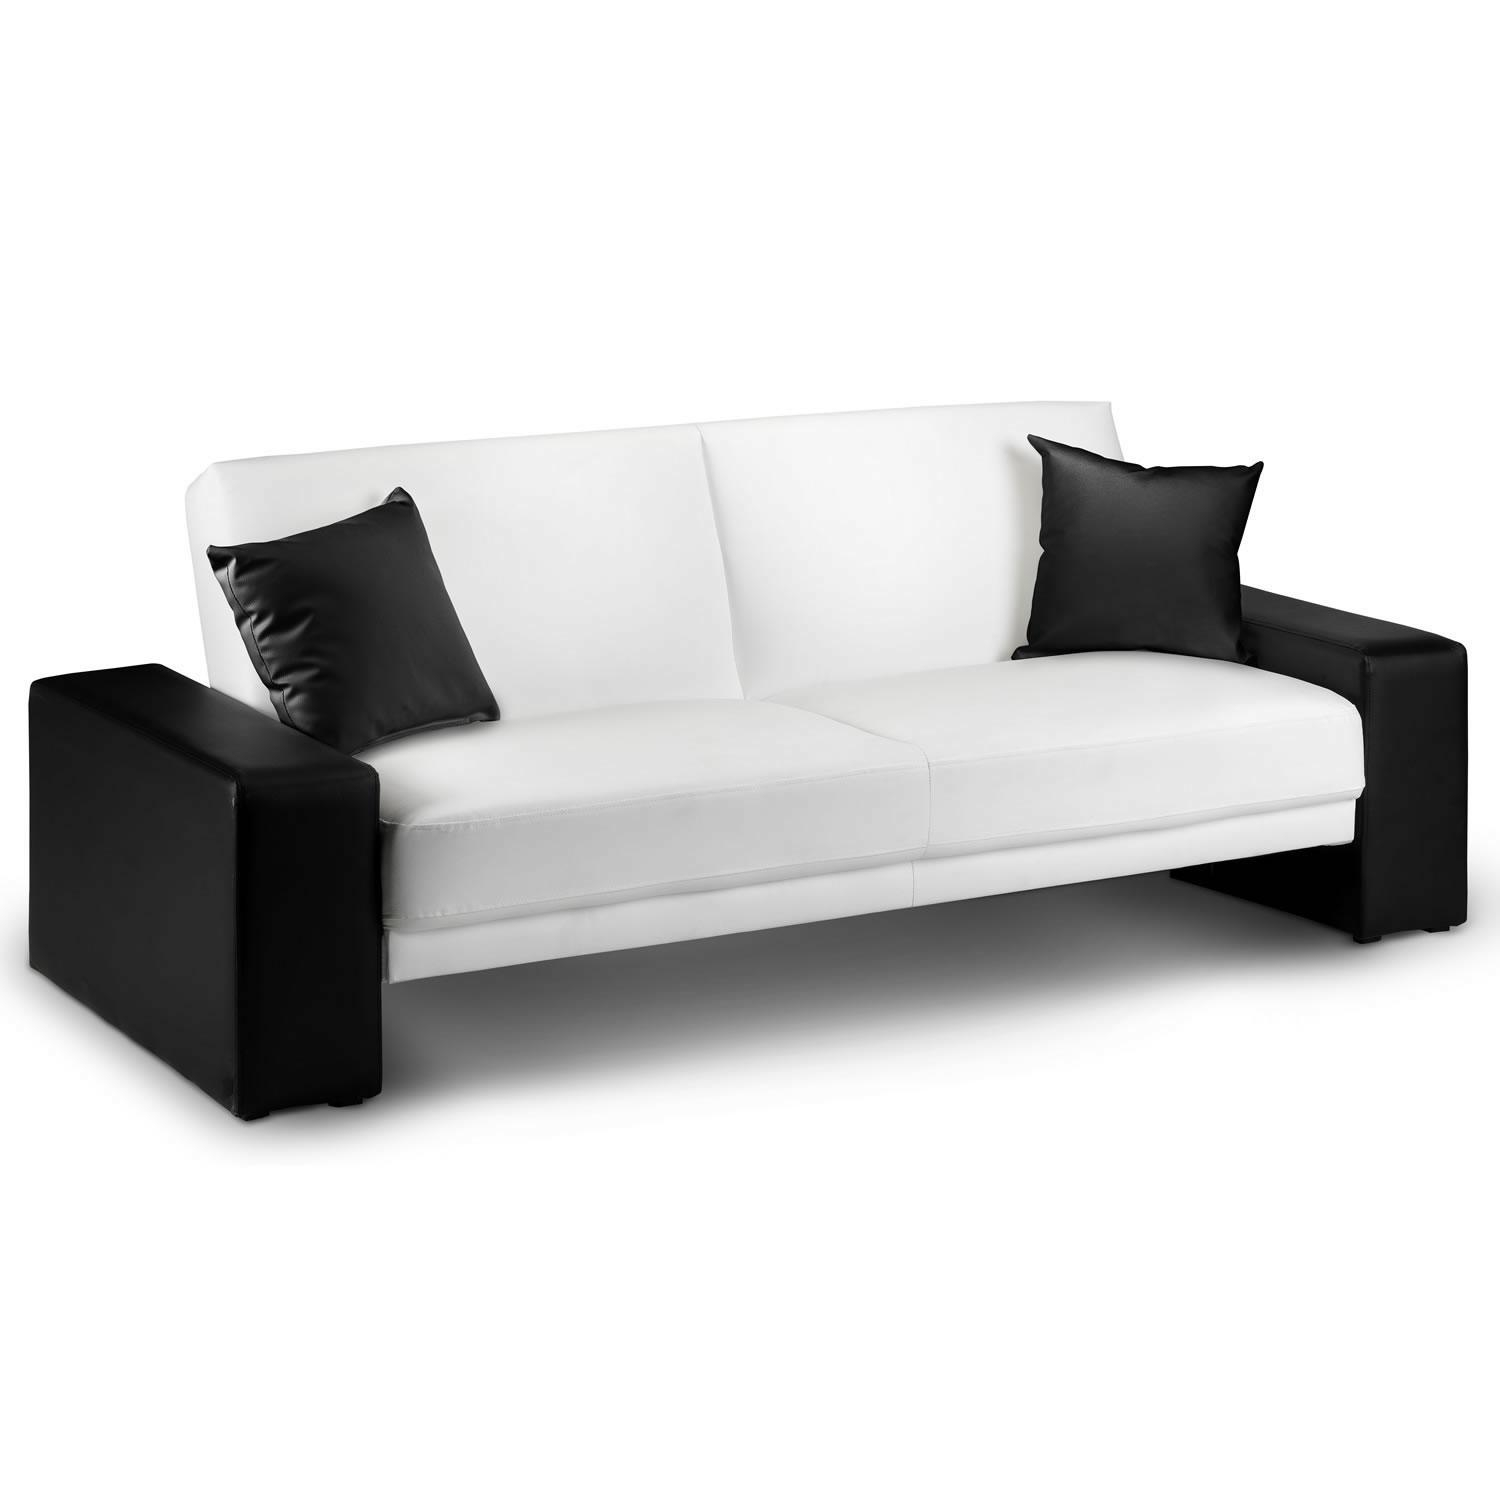 Sofas Center : Black And White Leather Sofa Set Auto Auctions Info Throughout Black And White Sofas (View 14 of 20)